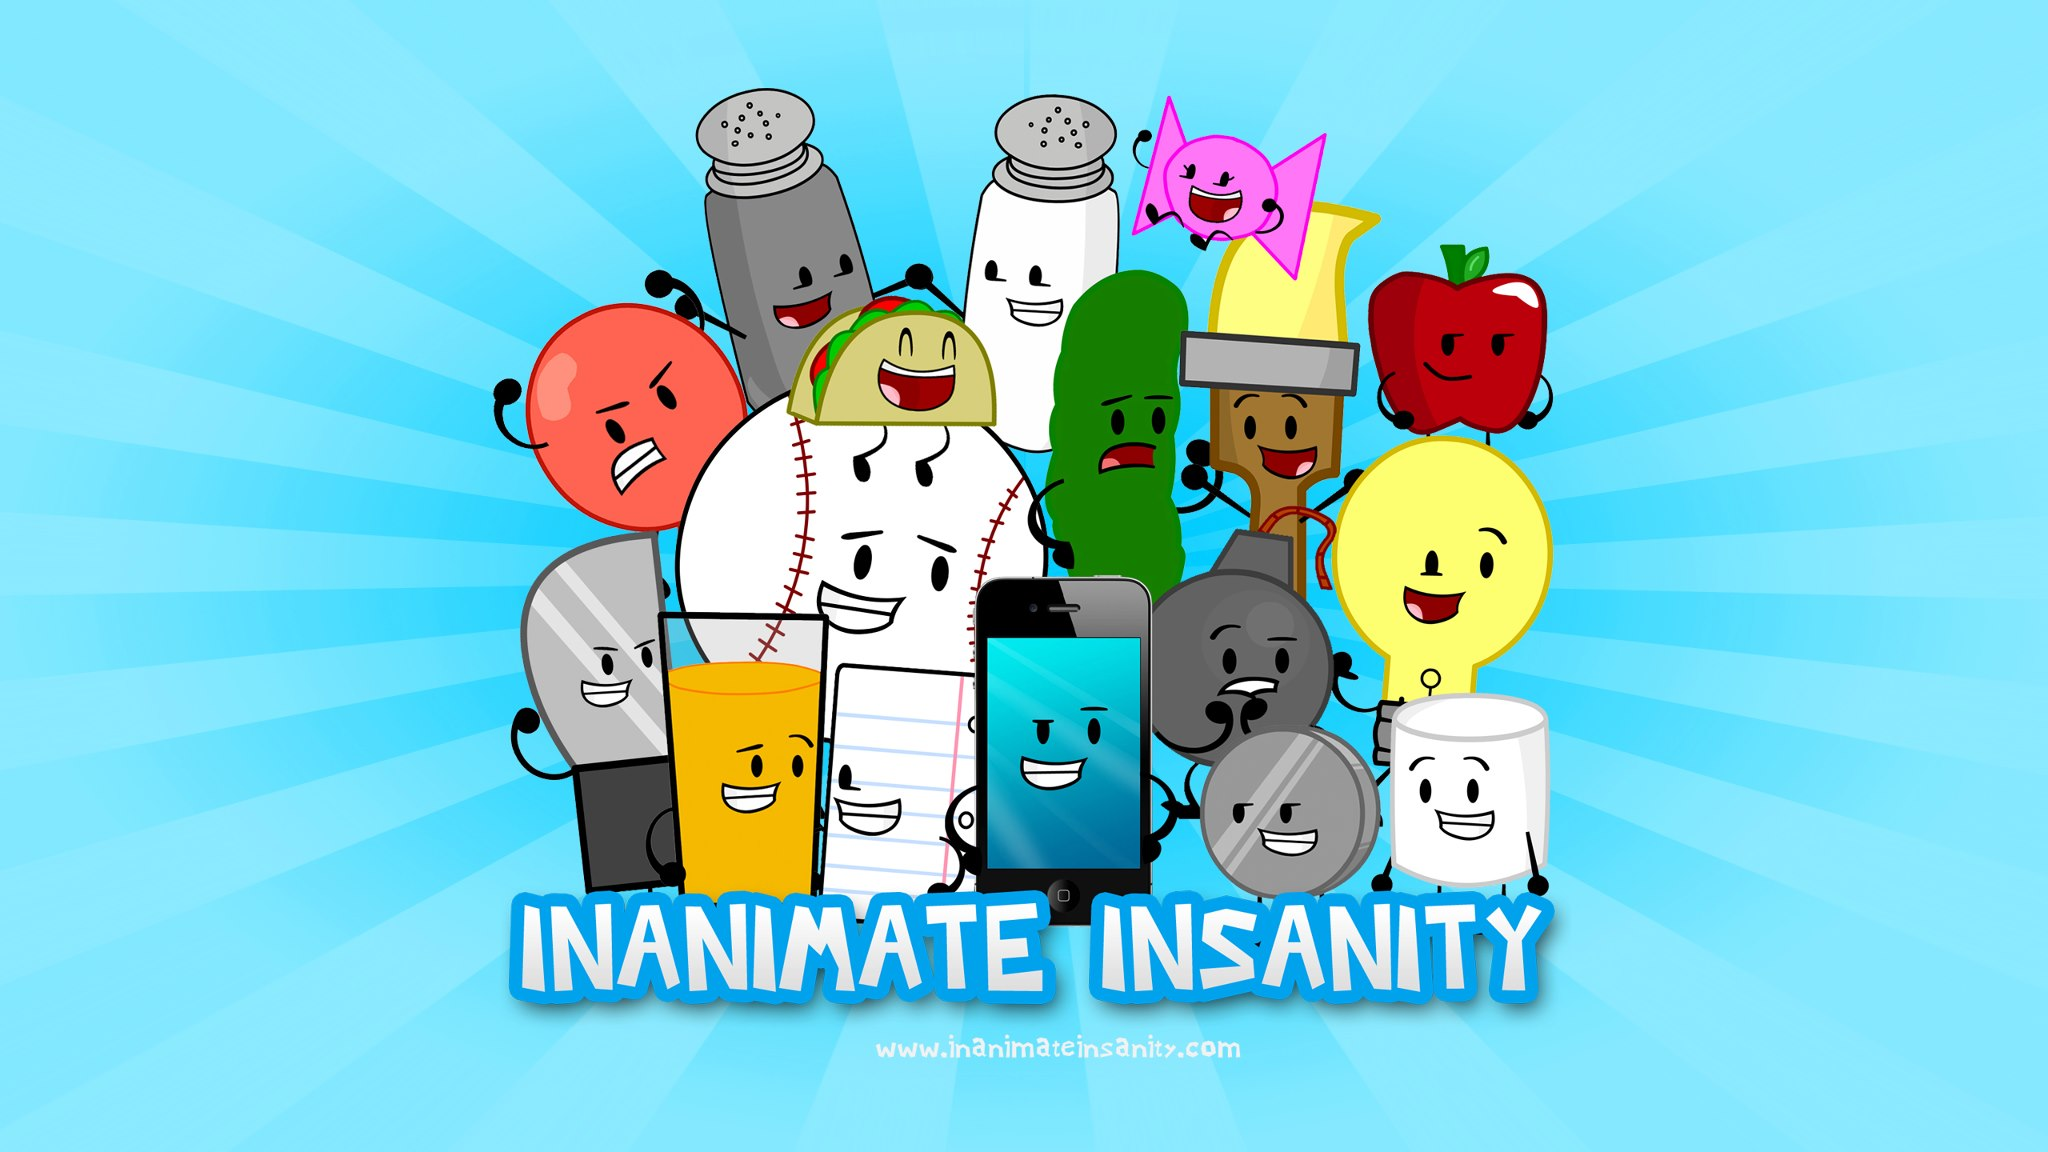 an analysis of the insanity for human The most comprehensive insanity workout review on the internet absolutely everything you need to know about the insanity workout.